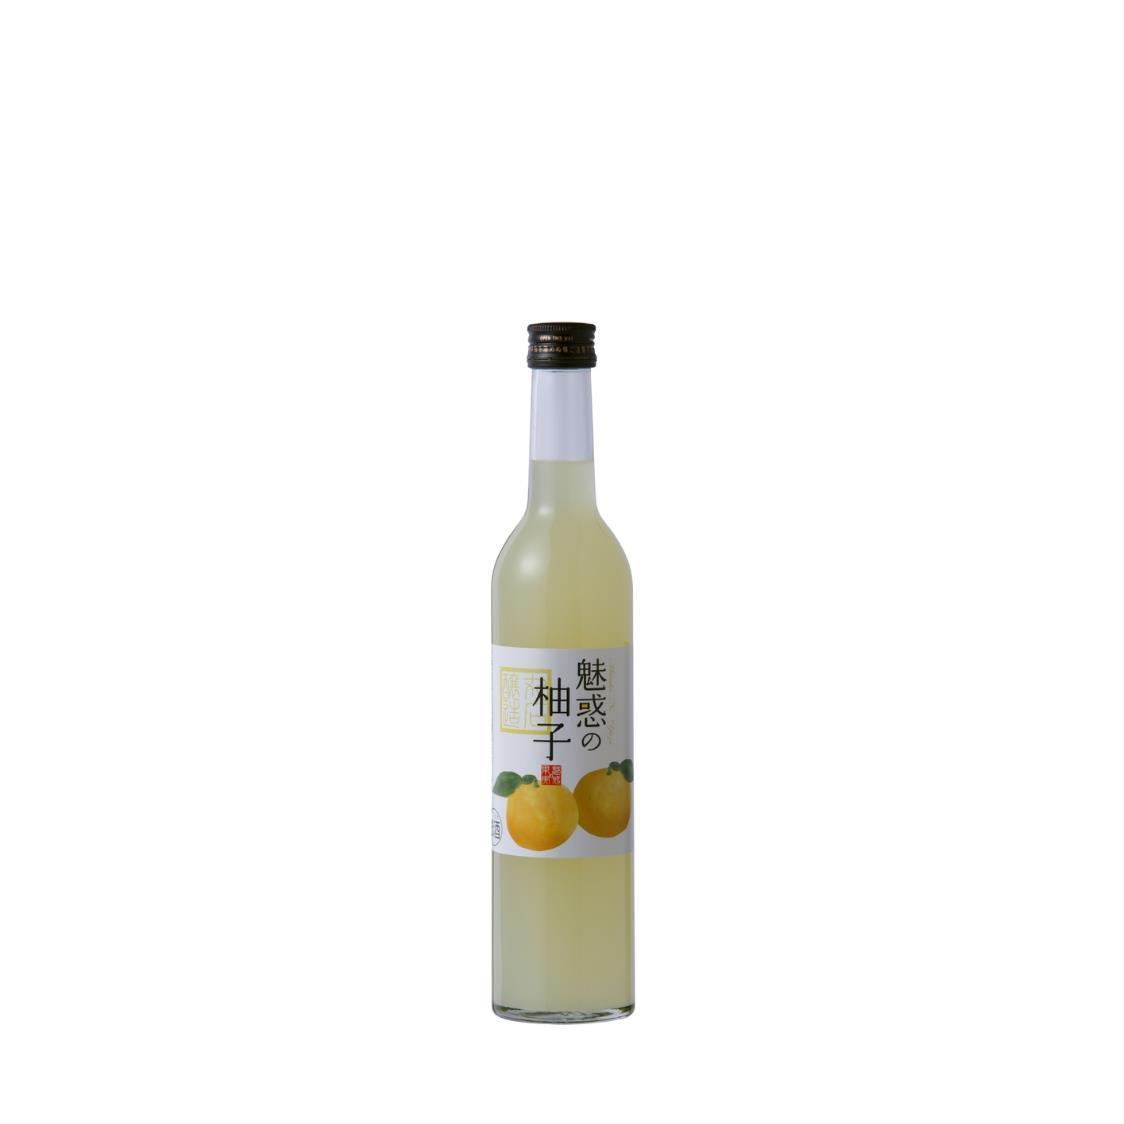 Miwaku No Yuzu Sake 500ml